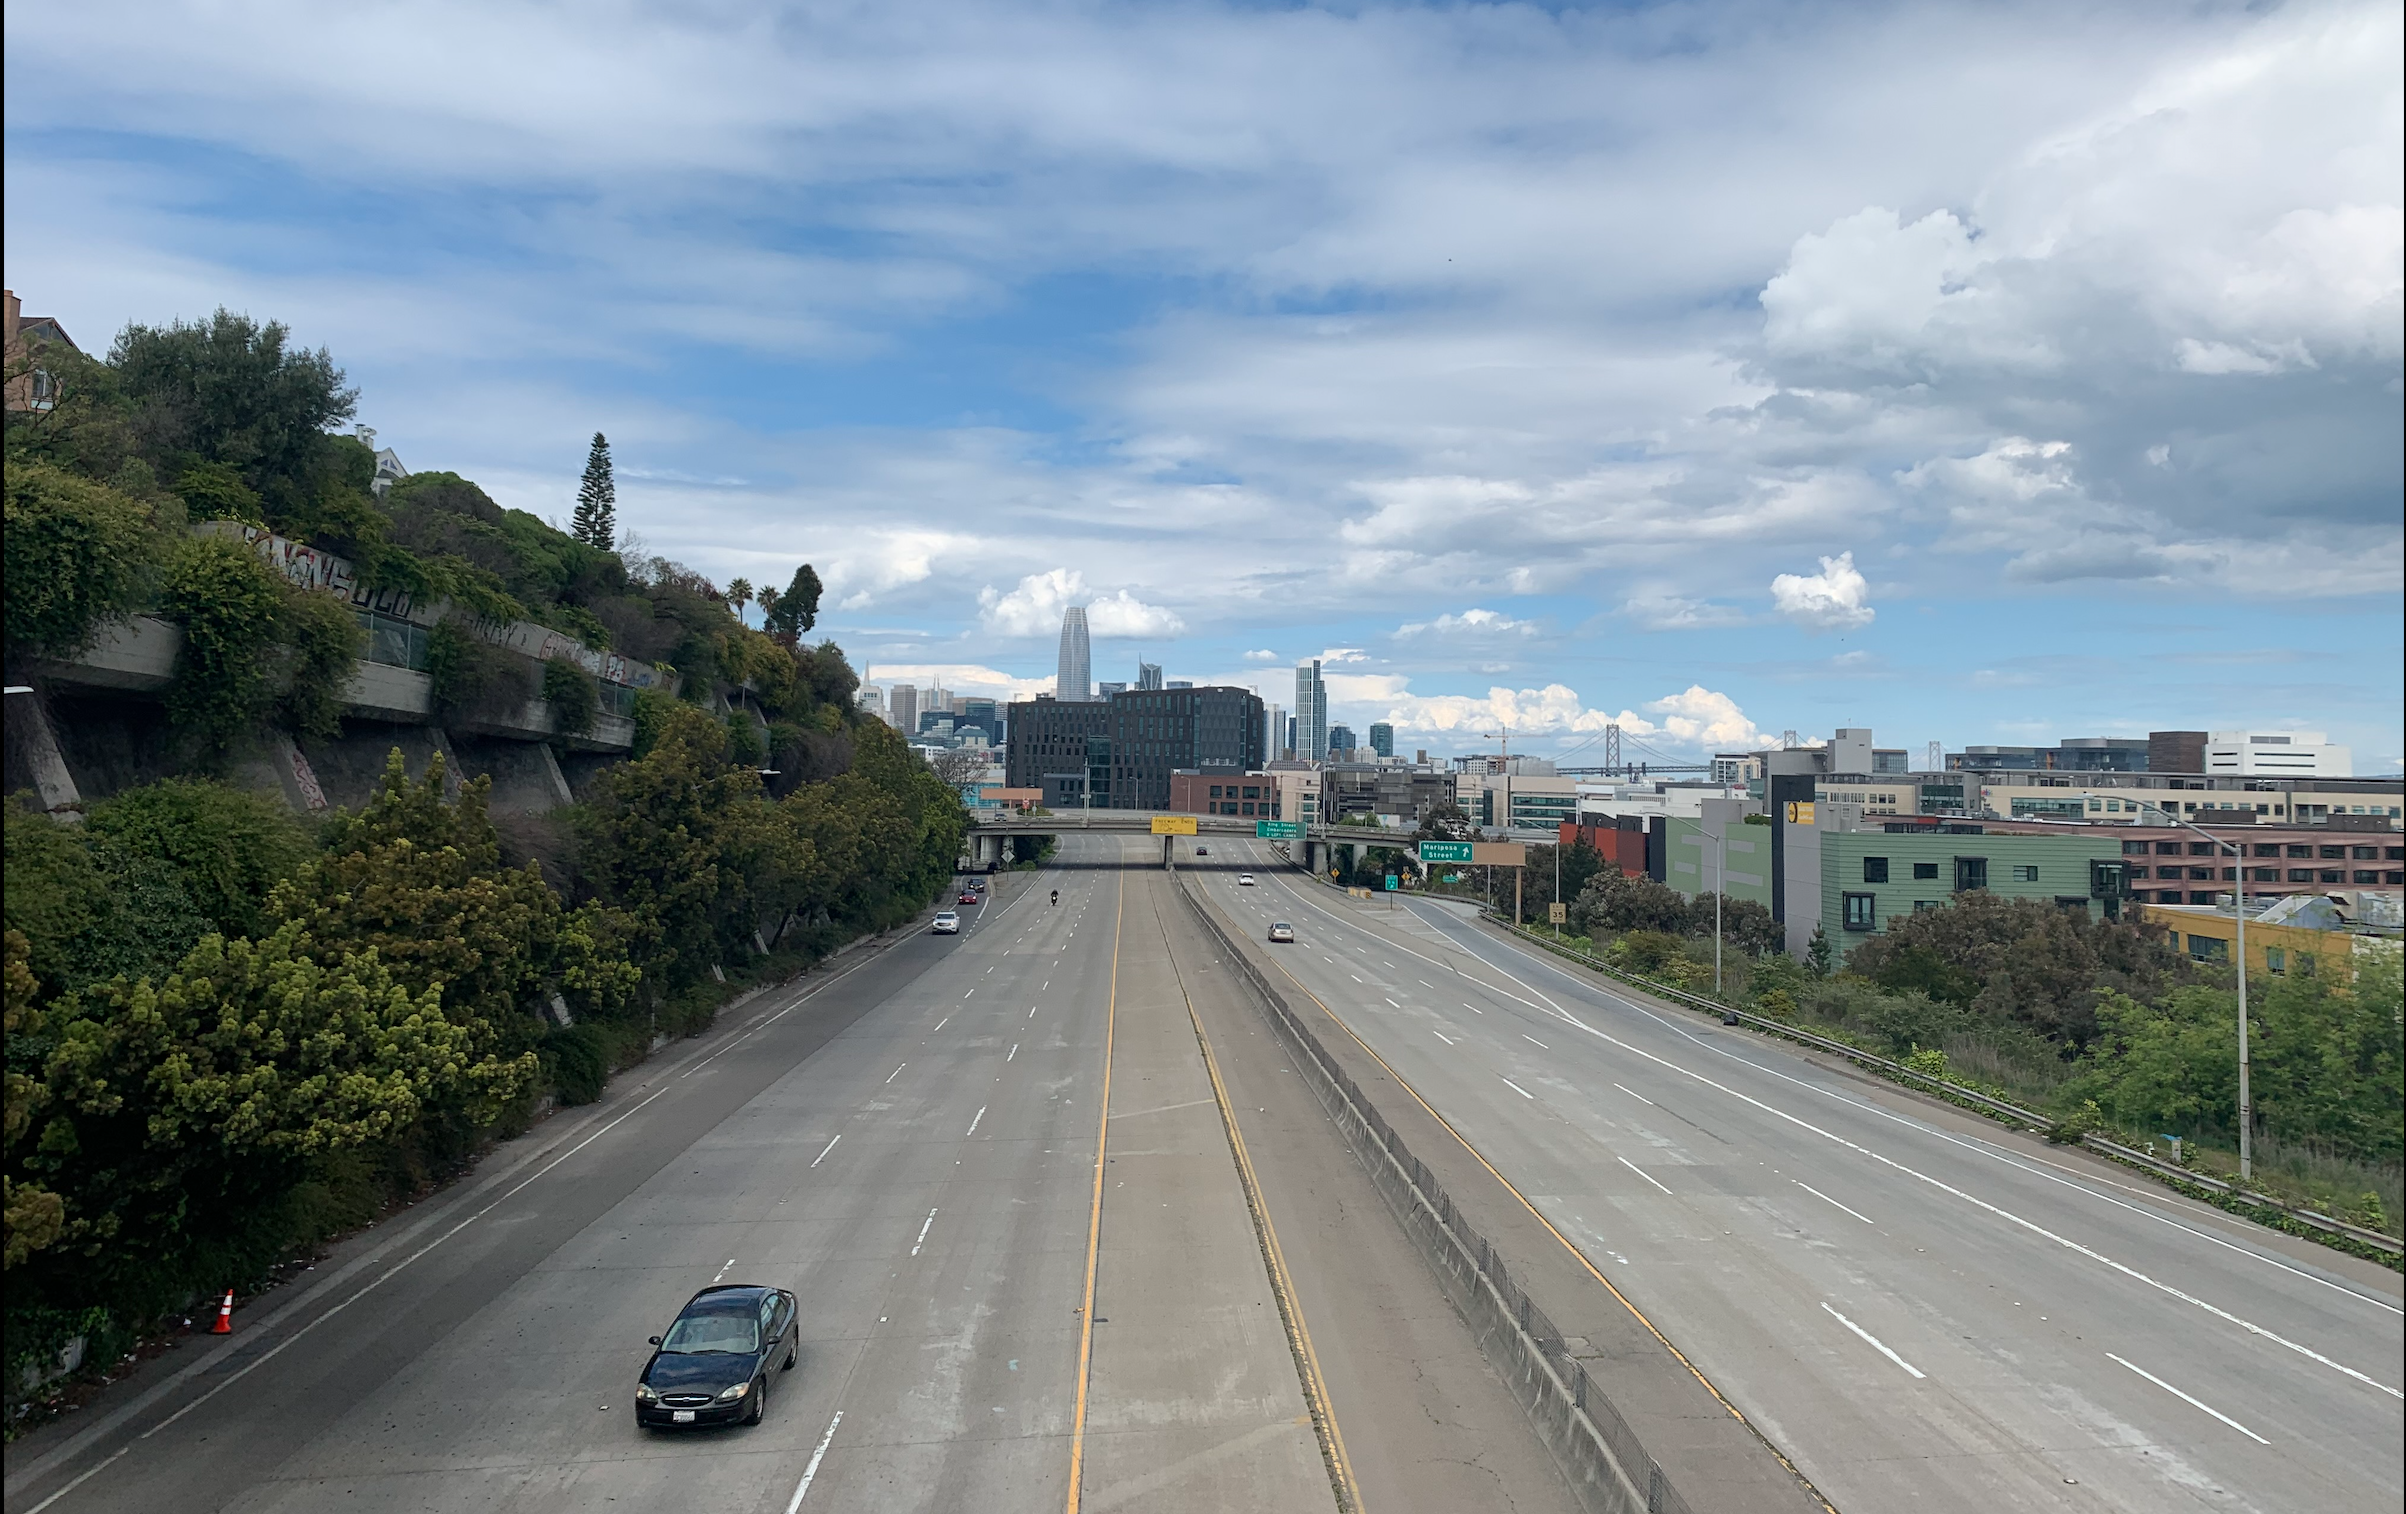 A nearly empty Interstate 280 in San Francisco on March 22.